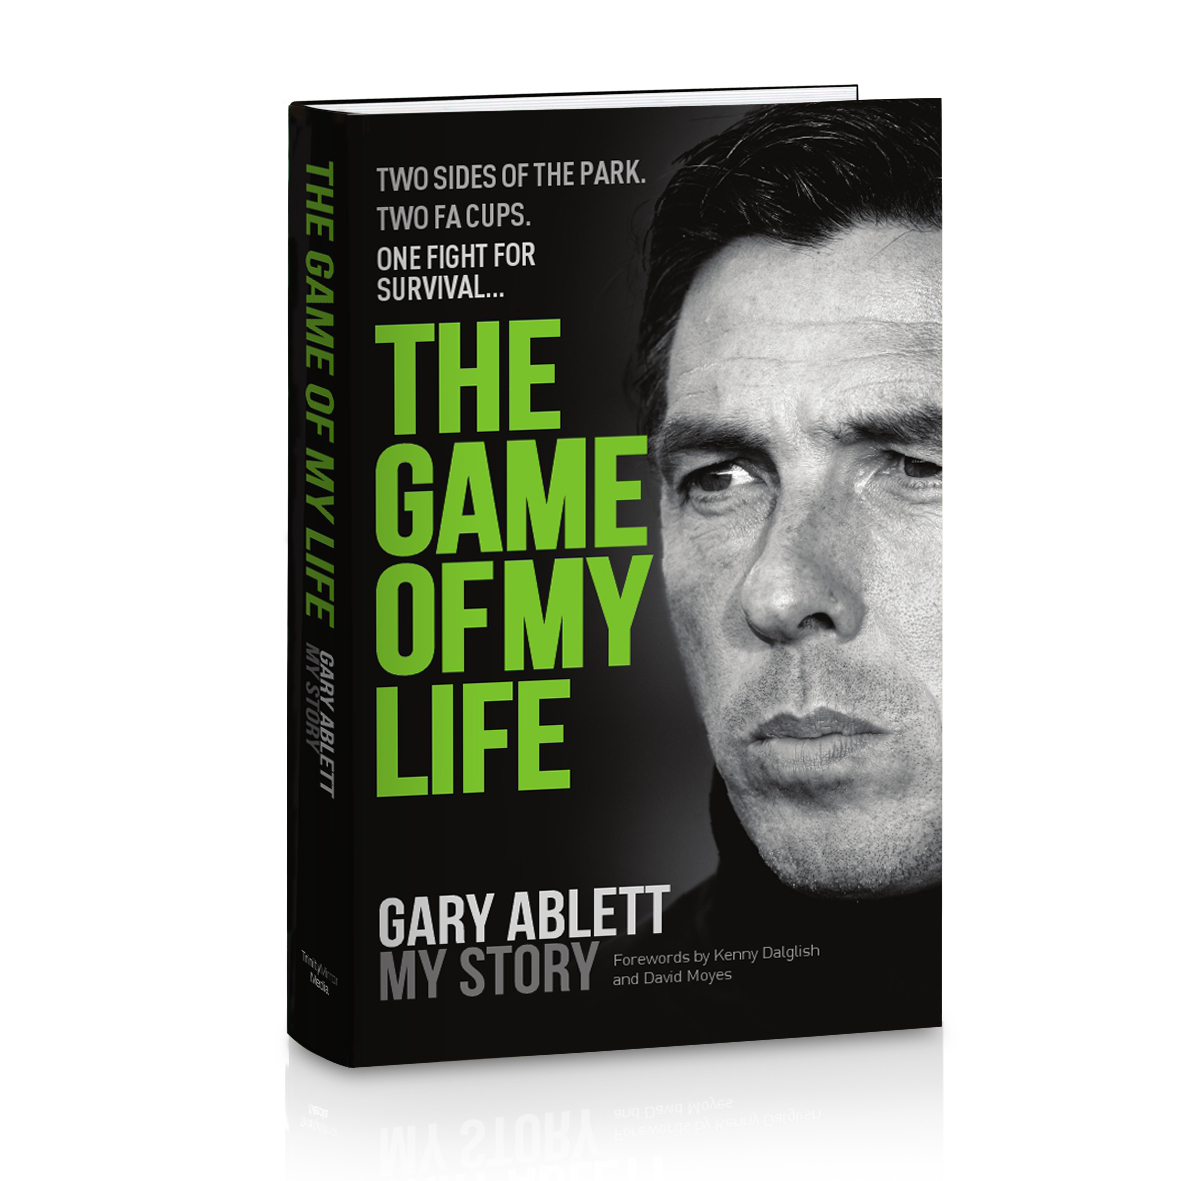 Everton The Game of My Life Gary Ablett - My story - Book